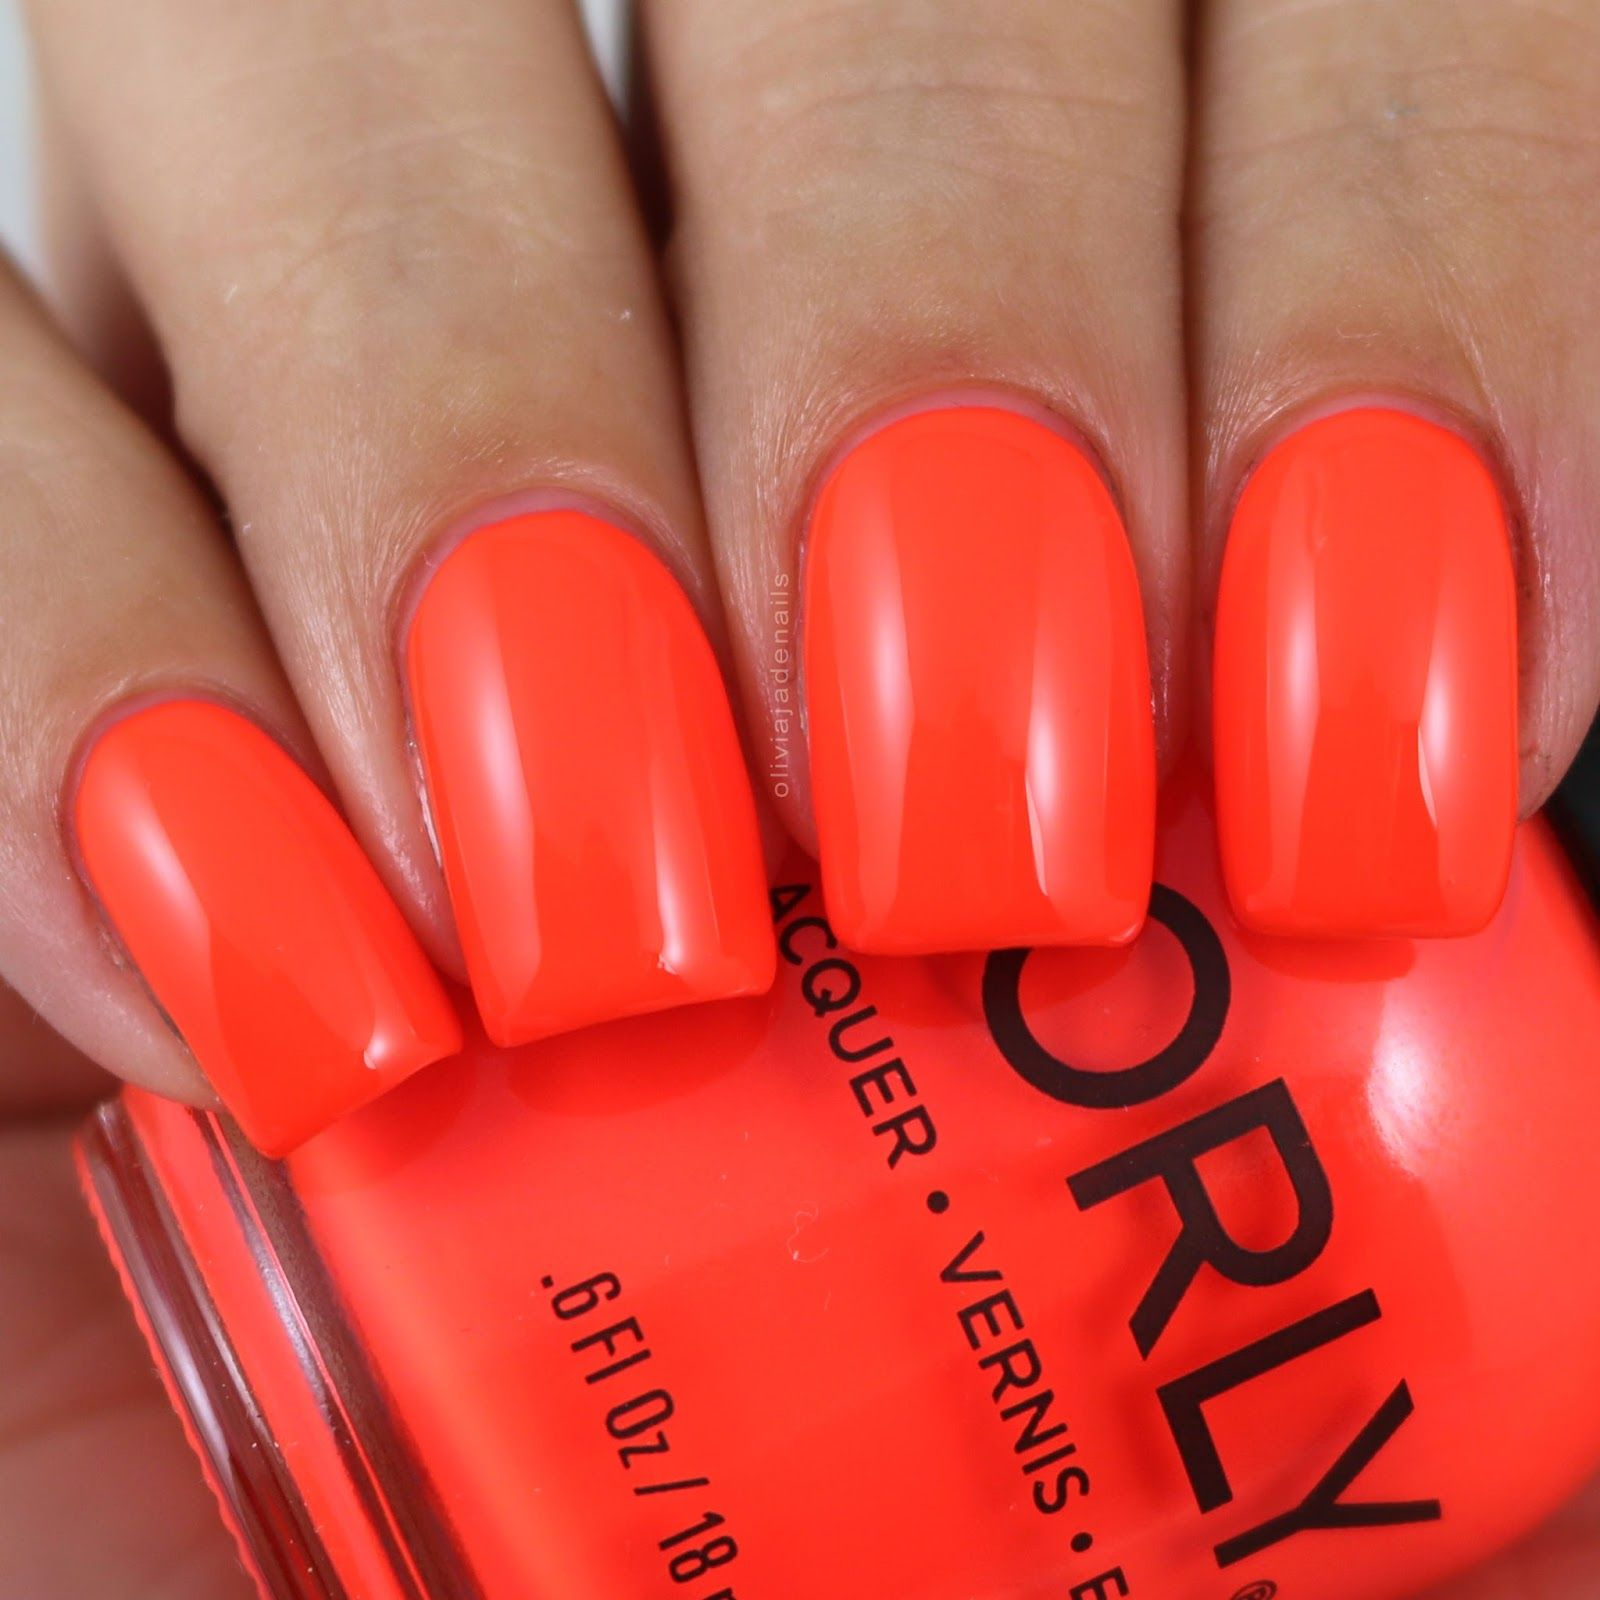 Orly Surfer Dude swatched by Olivia Jade Nails | Orly | Pinterest ...